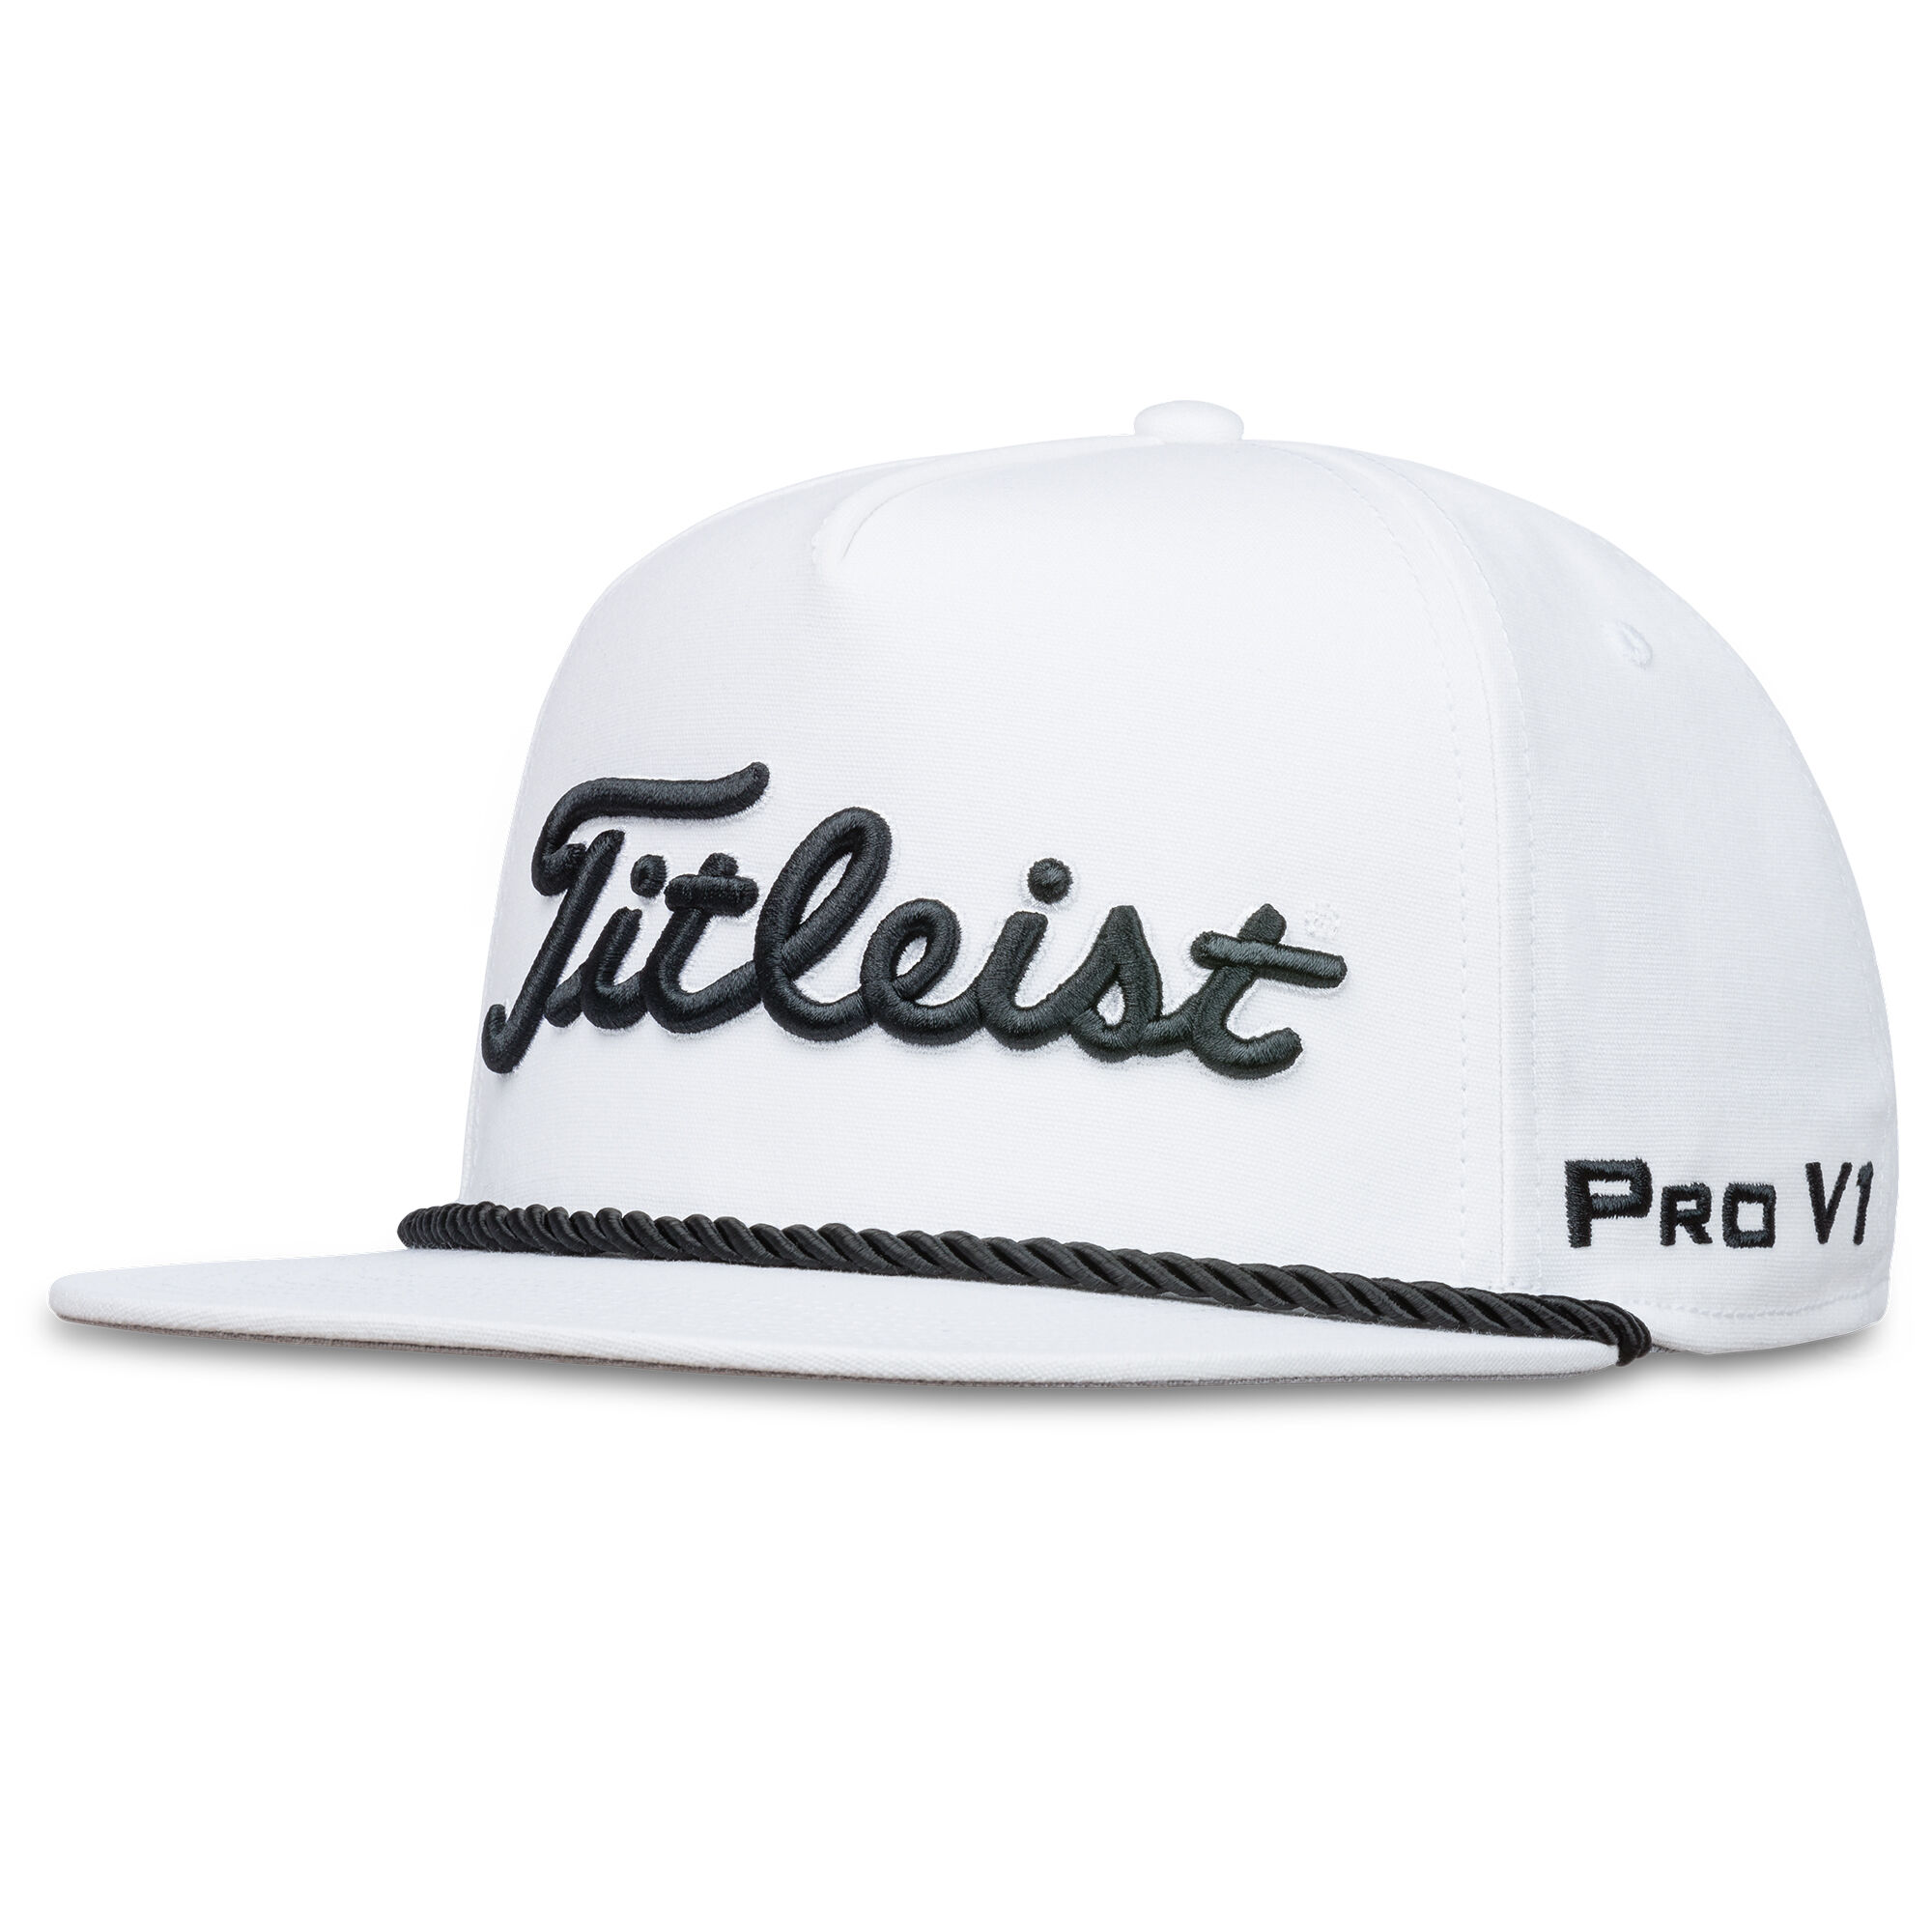 49eff327f743e0 ... promo code for buy rope hats tour rope flat bill hat titleist 4f8b2  7199f